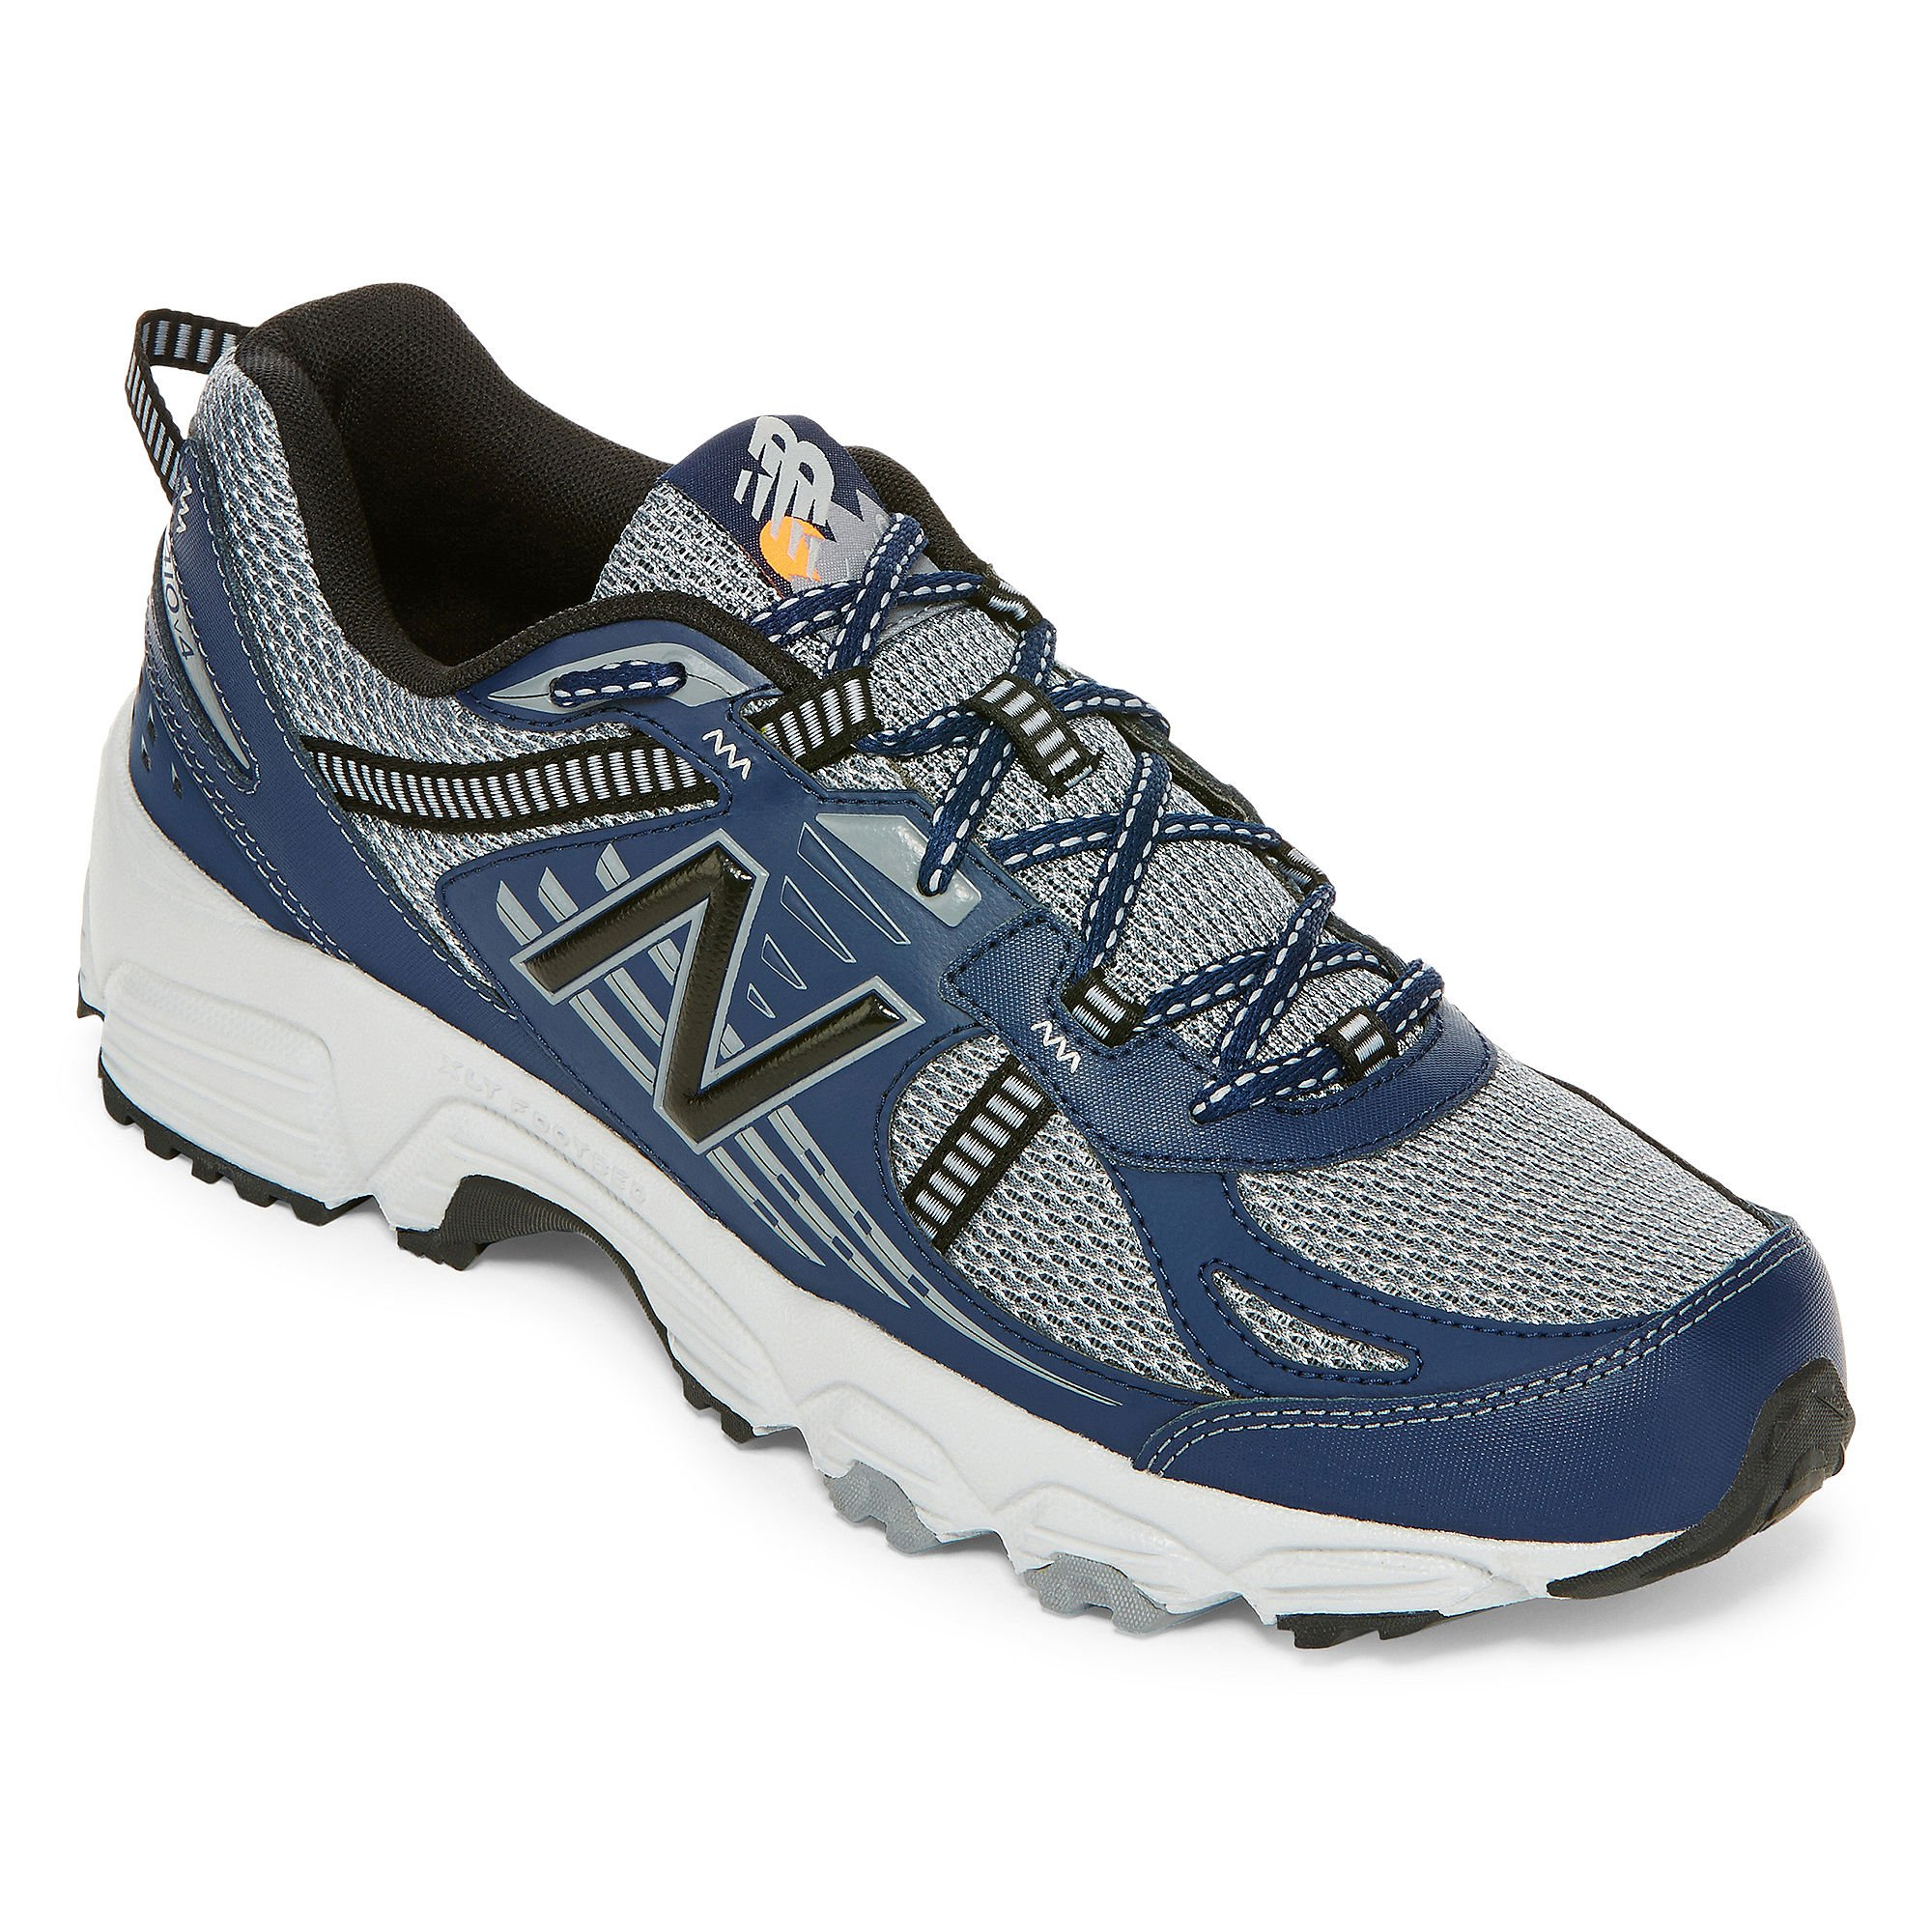 New Balance Men's, 410v4 Trail Running Shoes Grey Blue 10.5 D